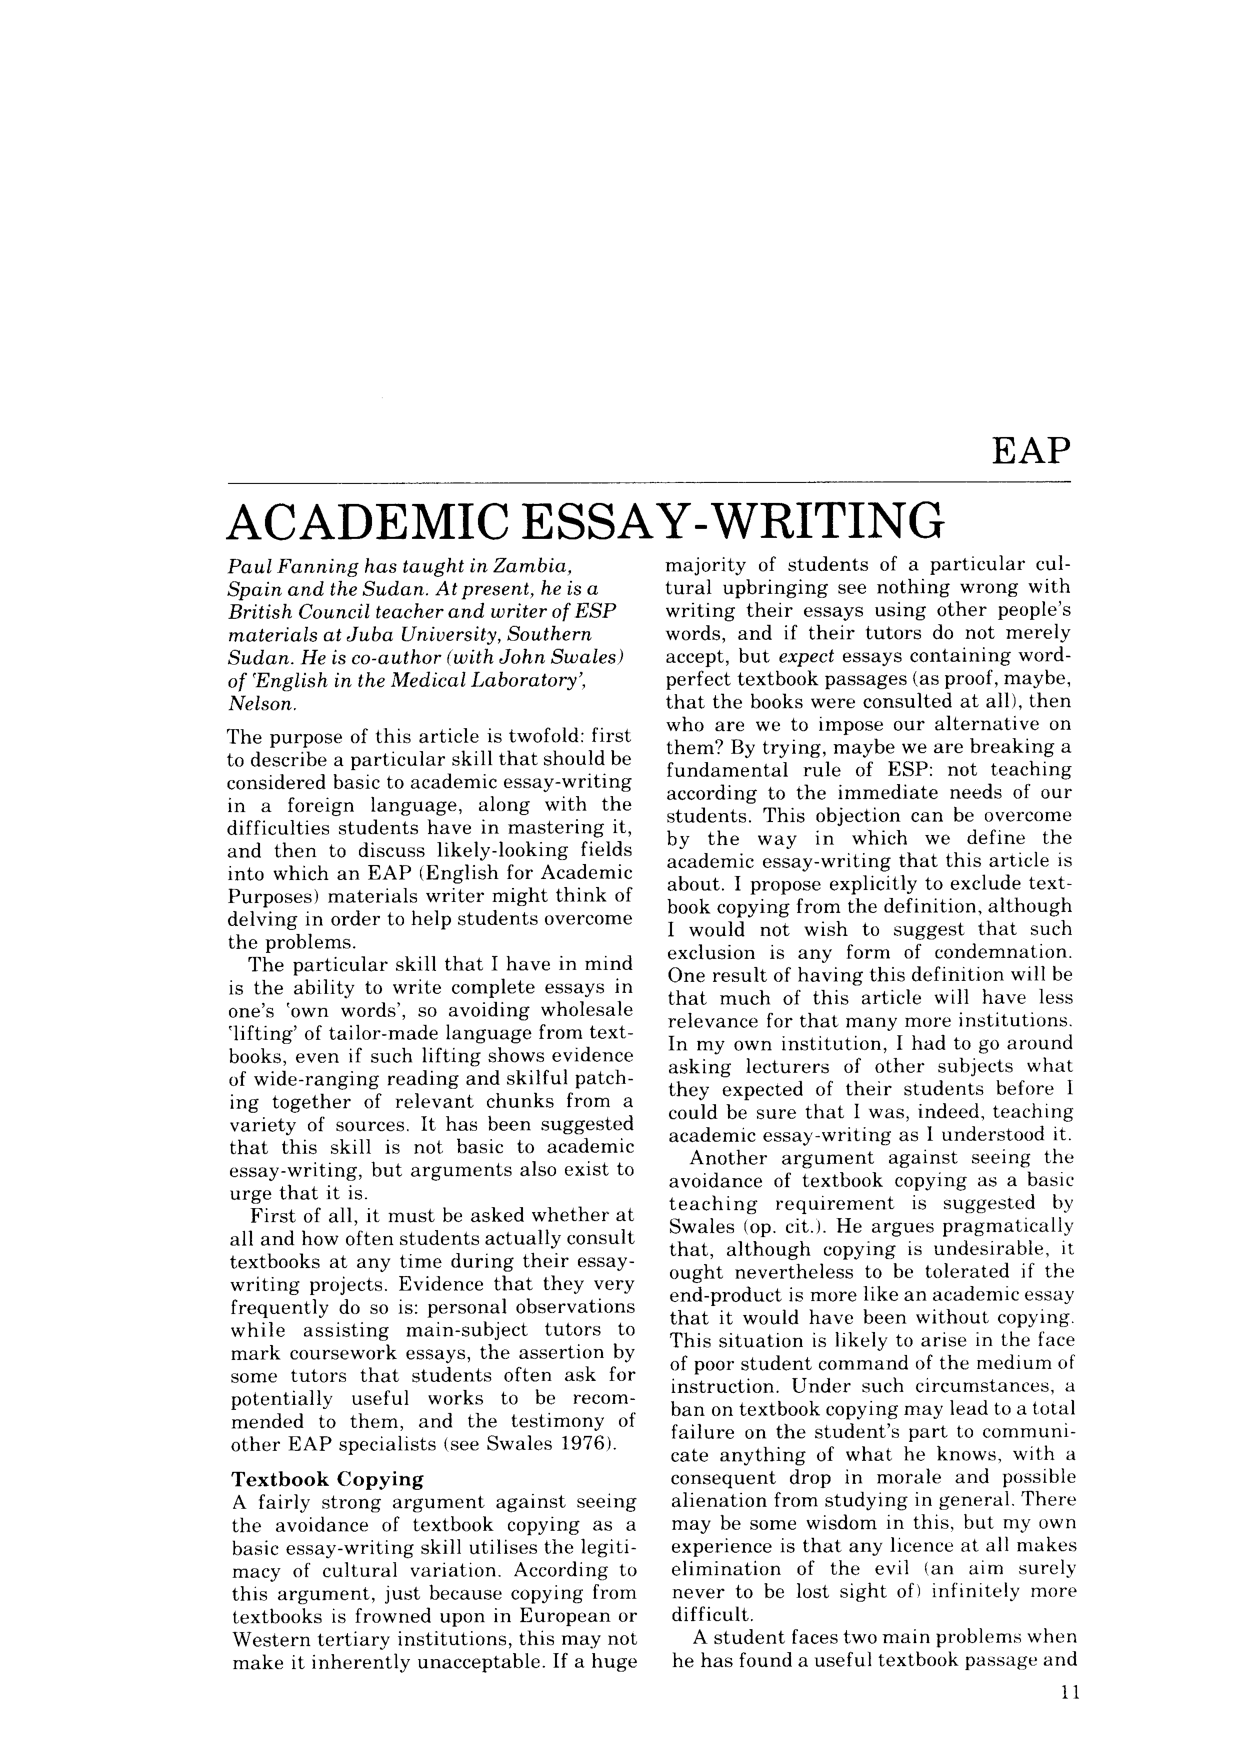 Help on essay writing